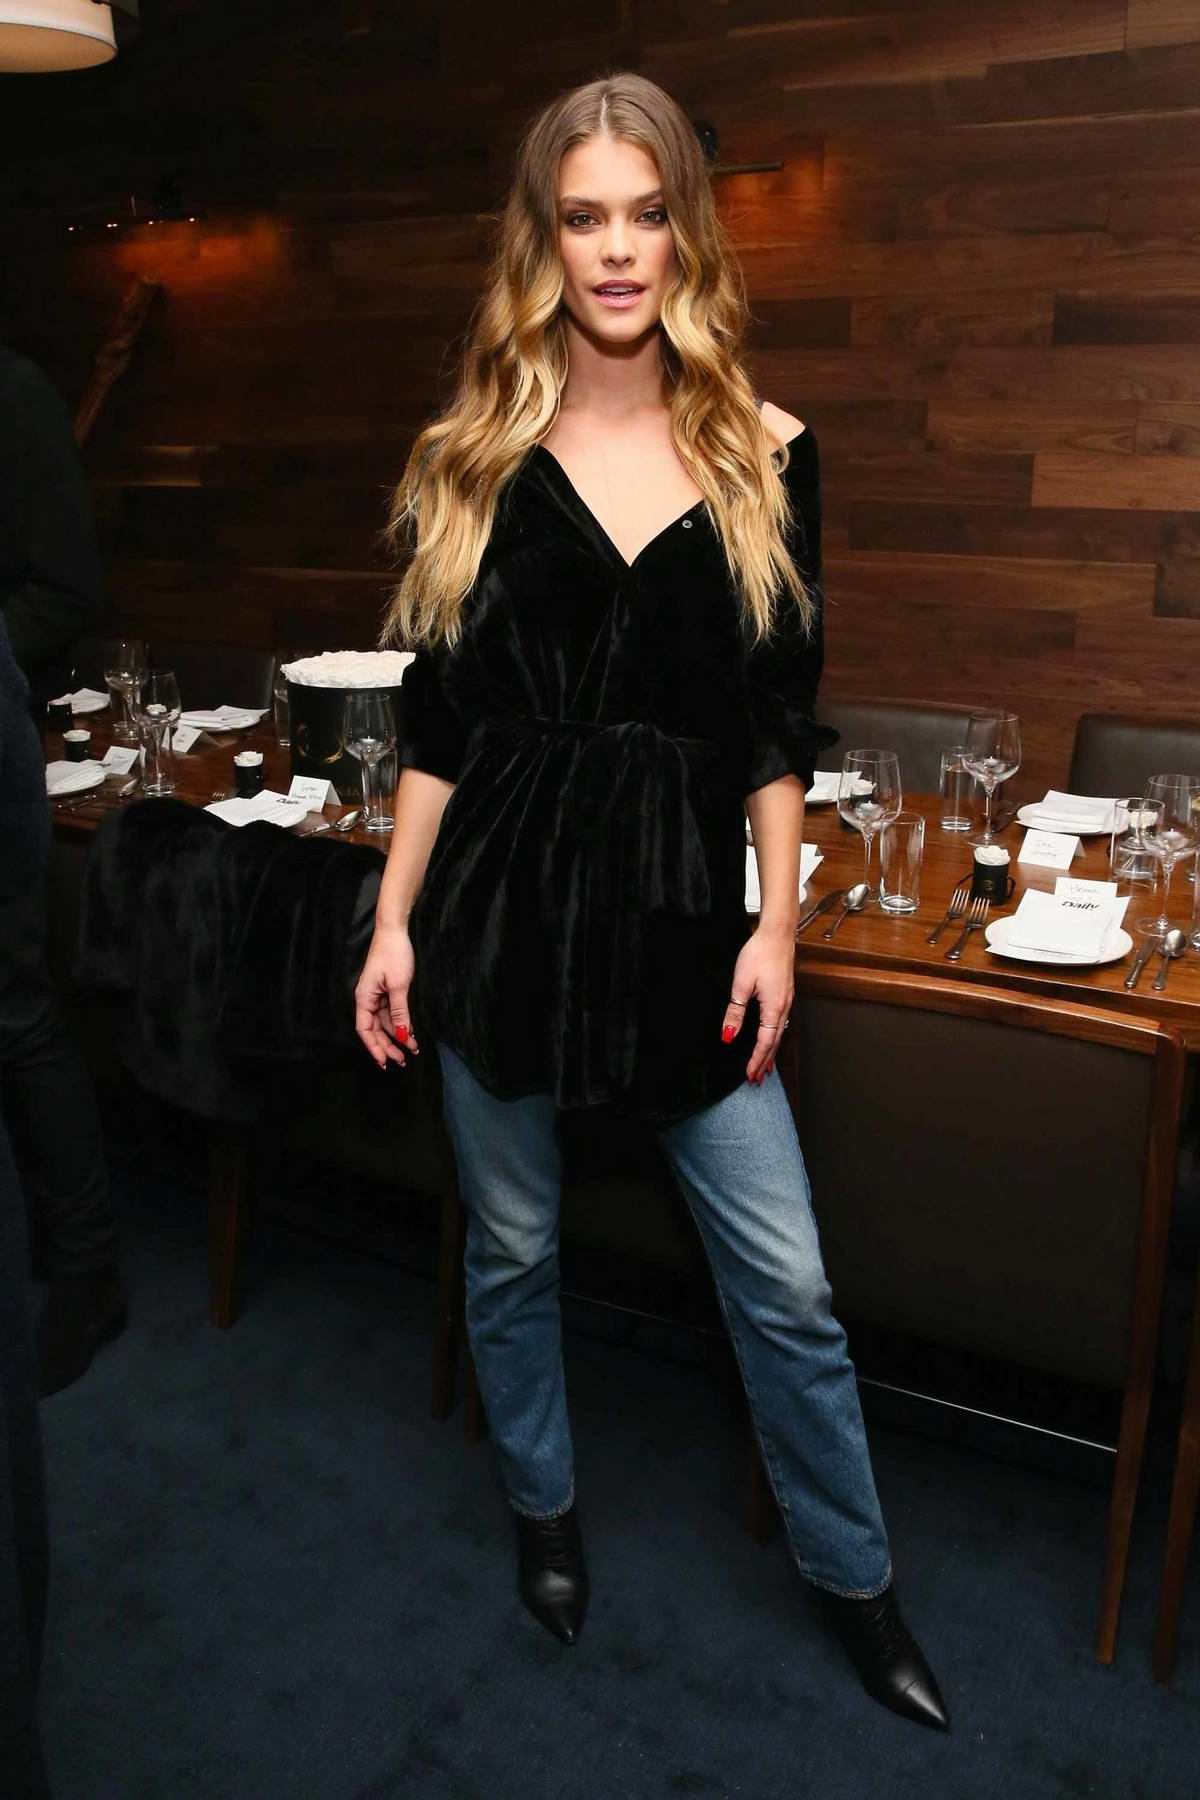 Nina Agdal attends Jeffrey Rudes Of L'Agence Dinner in New York City